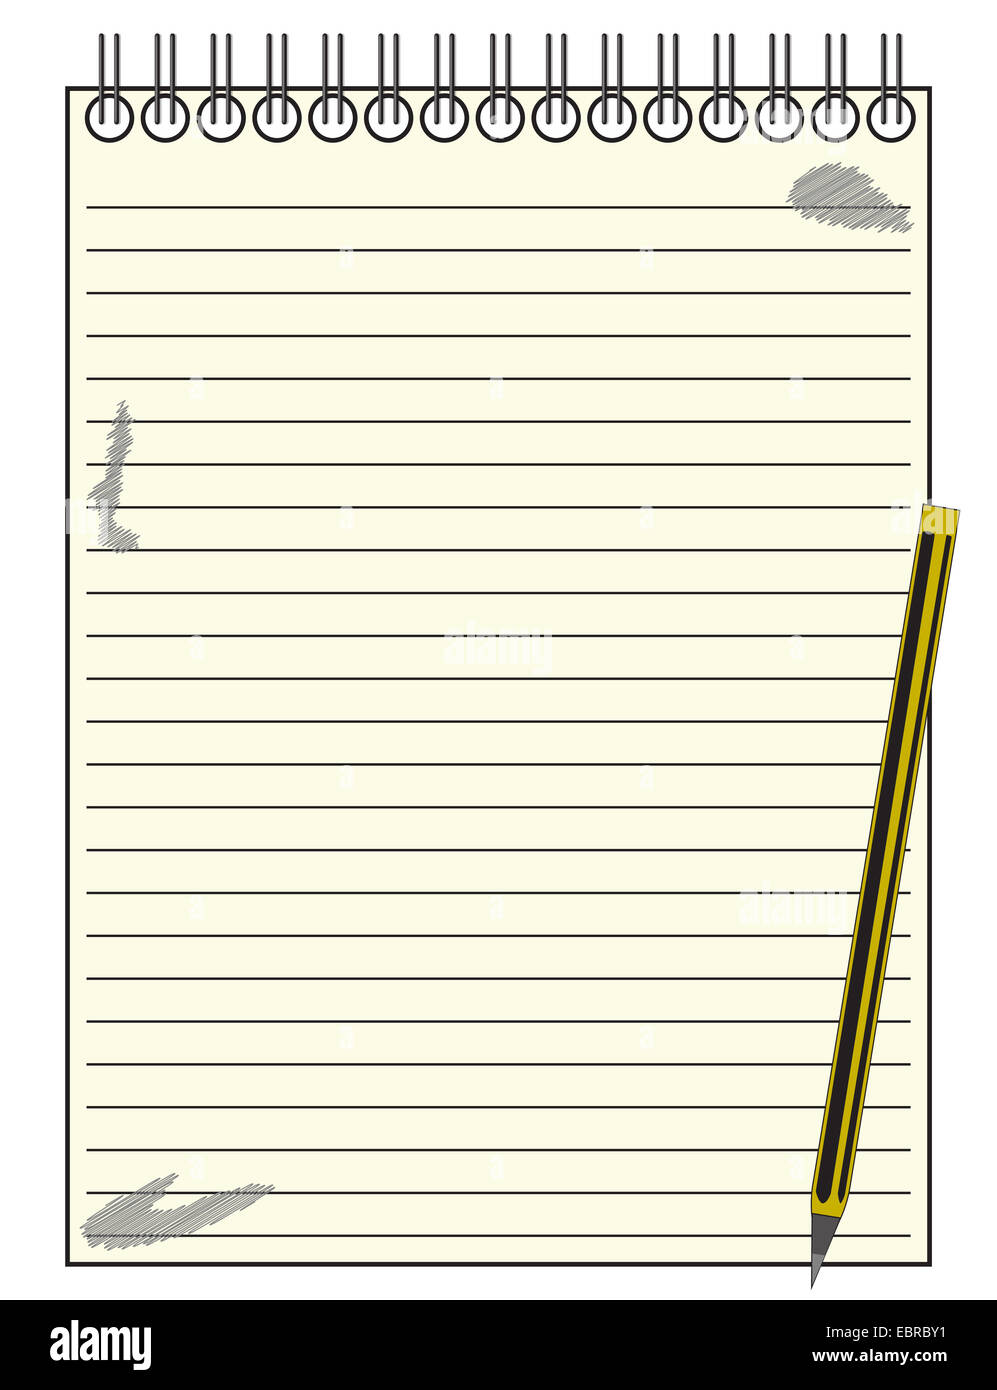 a lined reporter s blank notepad template or background with a